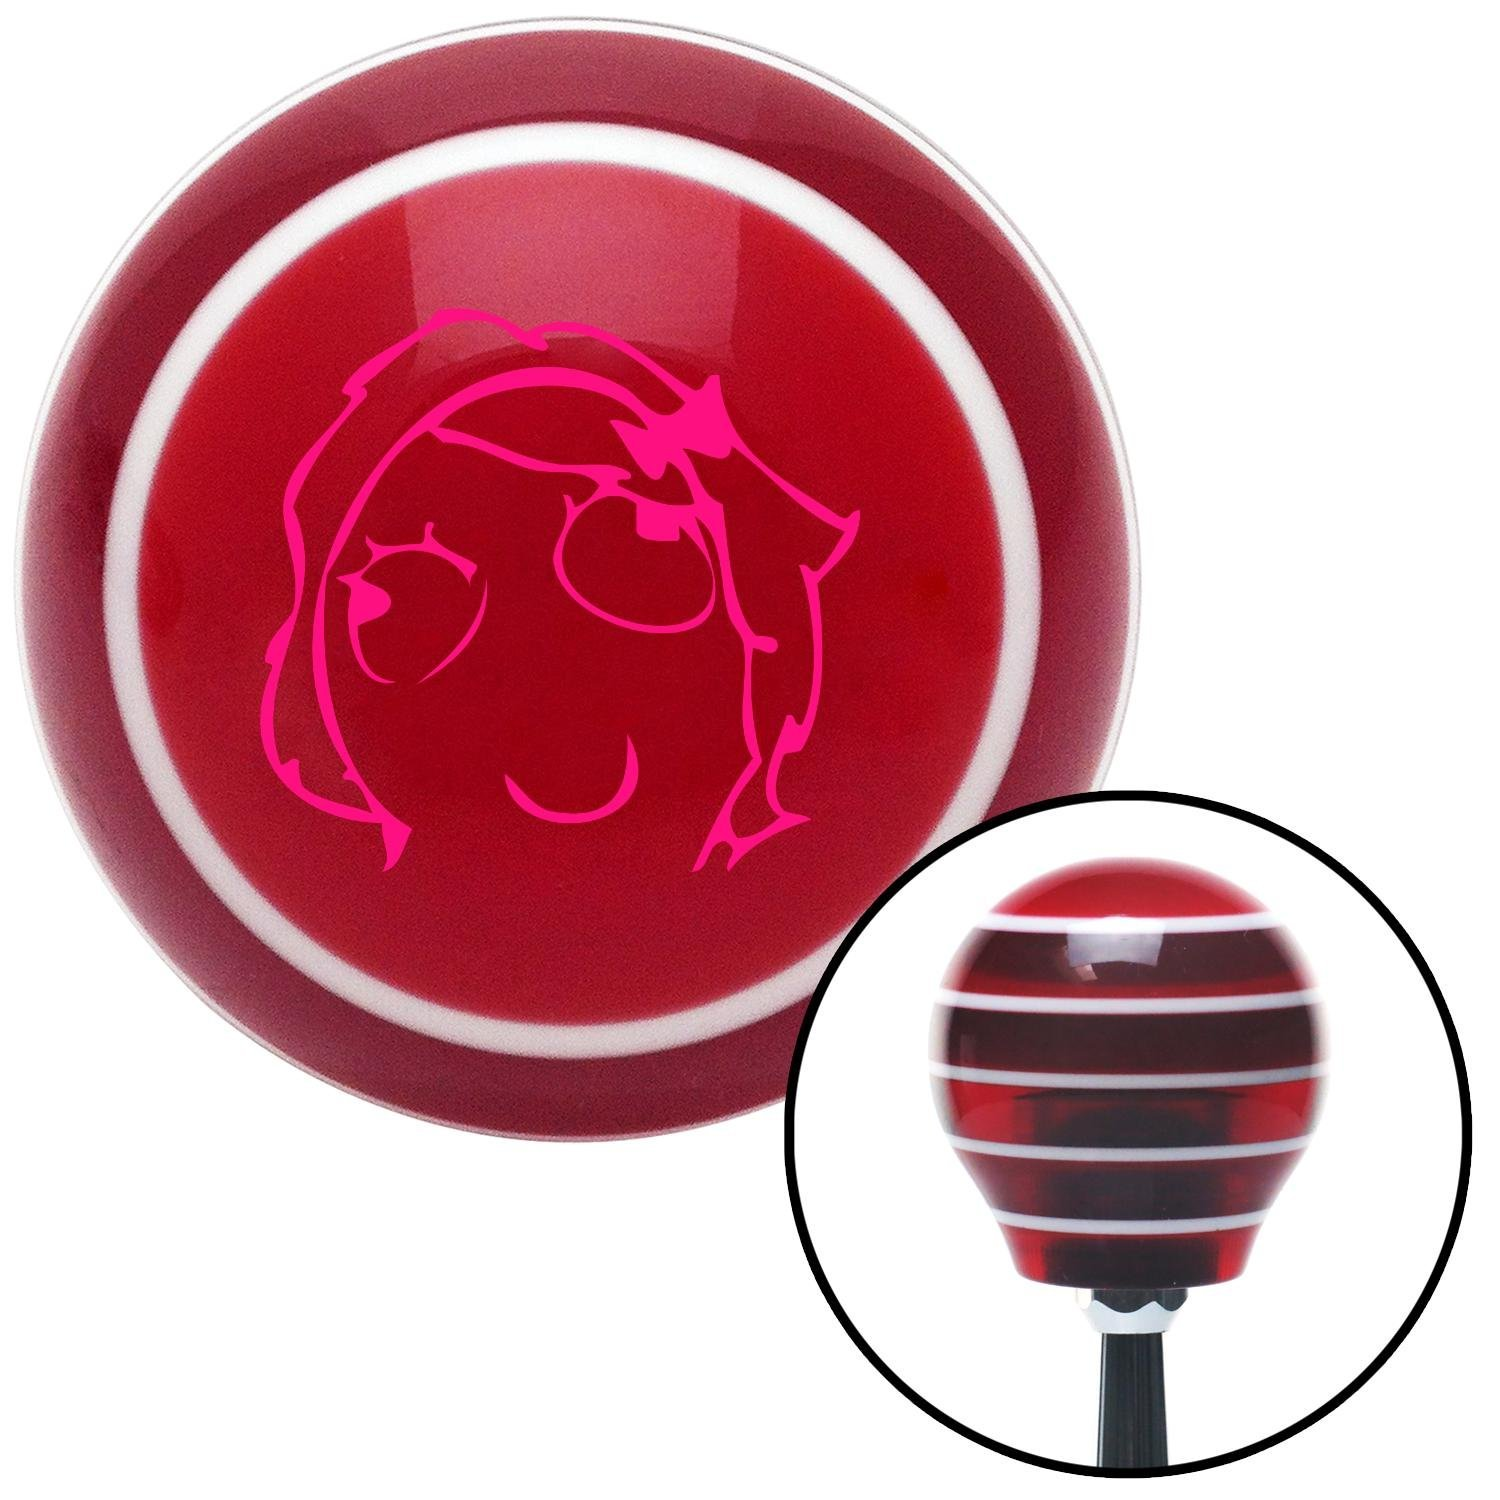 American Shifter 114634 Red Stripe Shift Knob with M16 x 1.5 Insert Pink Female Retarded